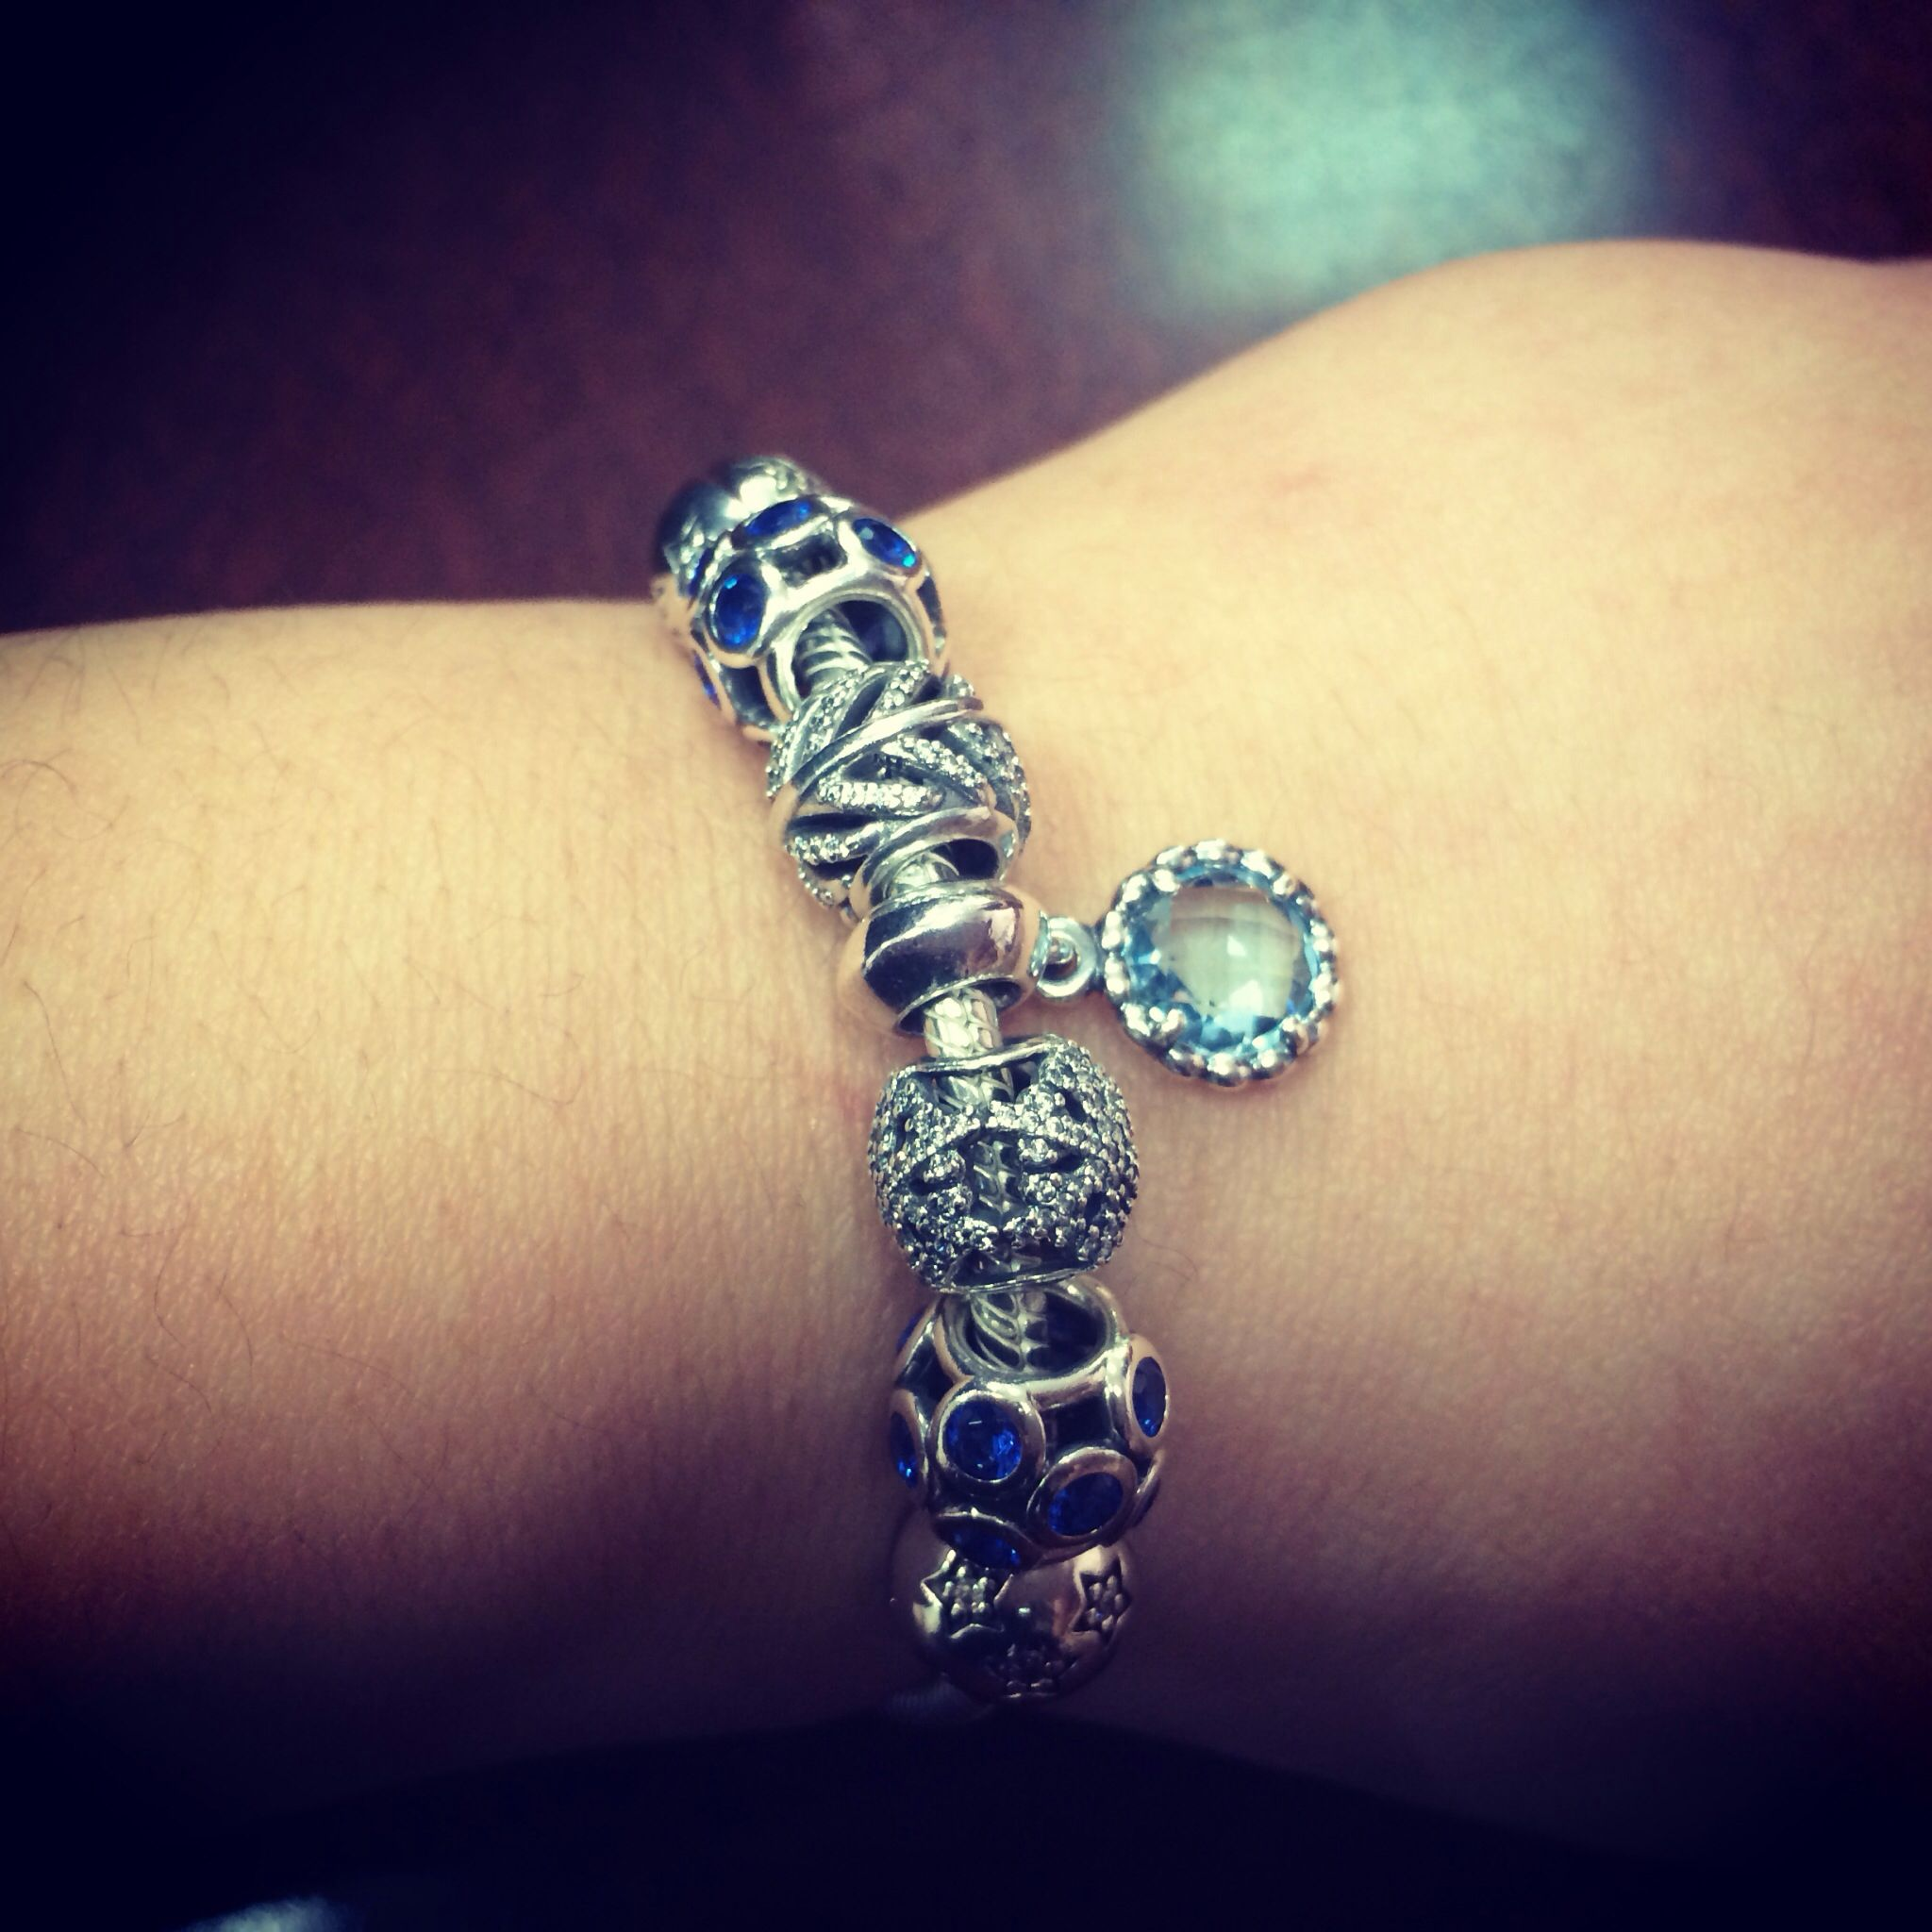 My #pandora Bracelet 'twinkle' Clips With 'blue Whimsical Lights,' '